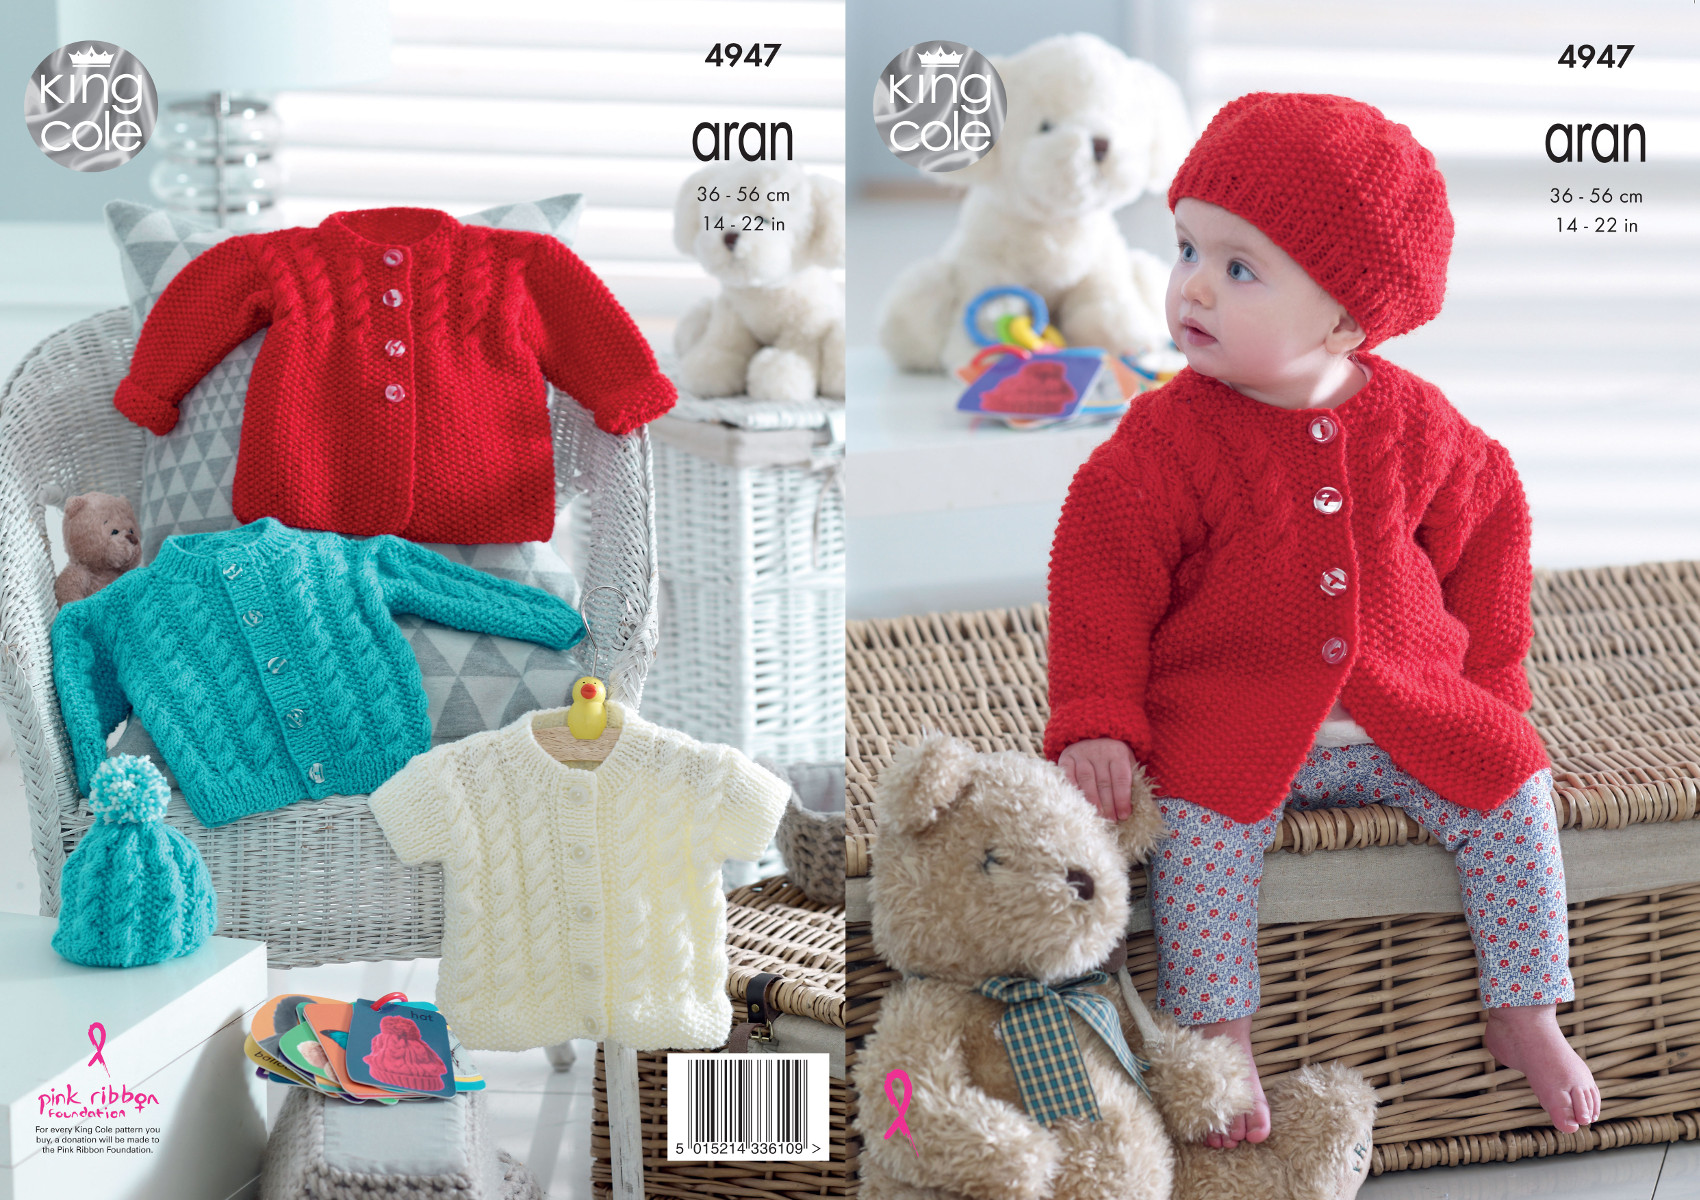 db1a67828 King Cole Baby Aran Knitting Pattern for Cable Knit Jackets Cardigan ...